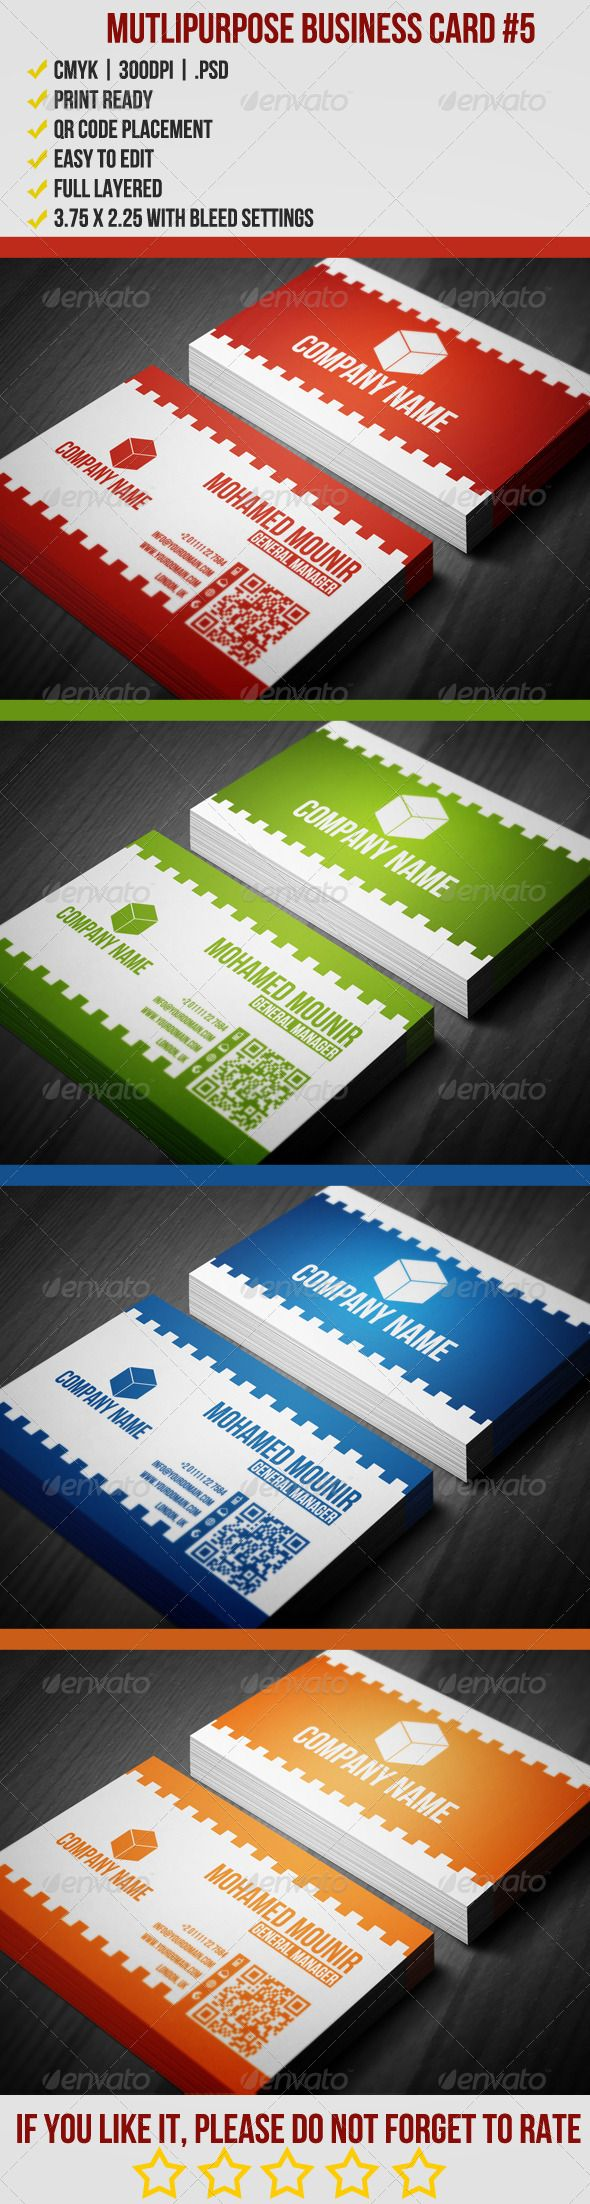 18 best business card templates images on pinterest business multipurpose business card 5 alramifo Images